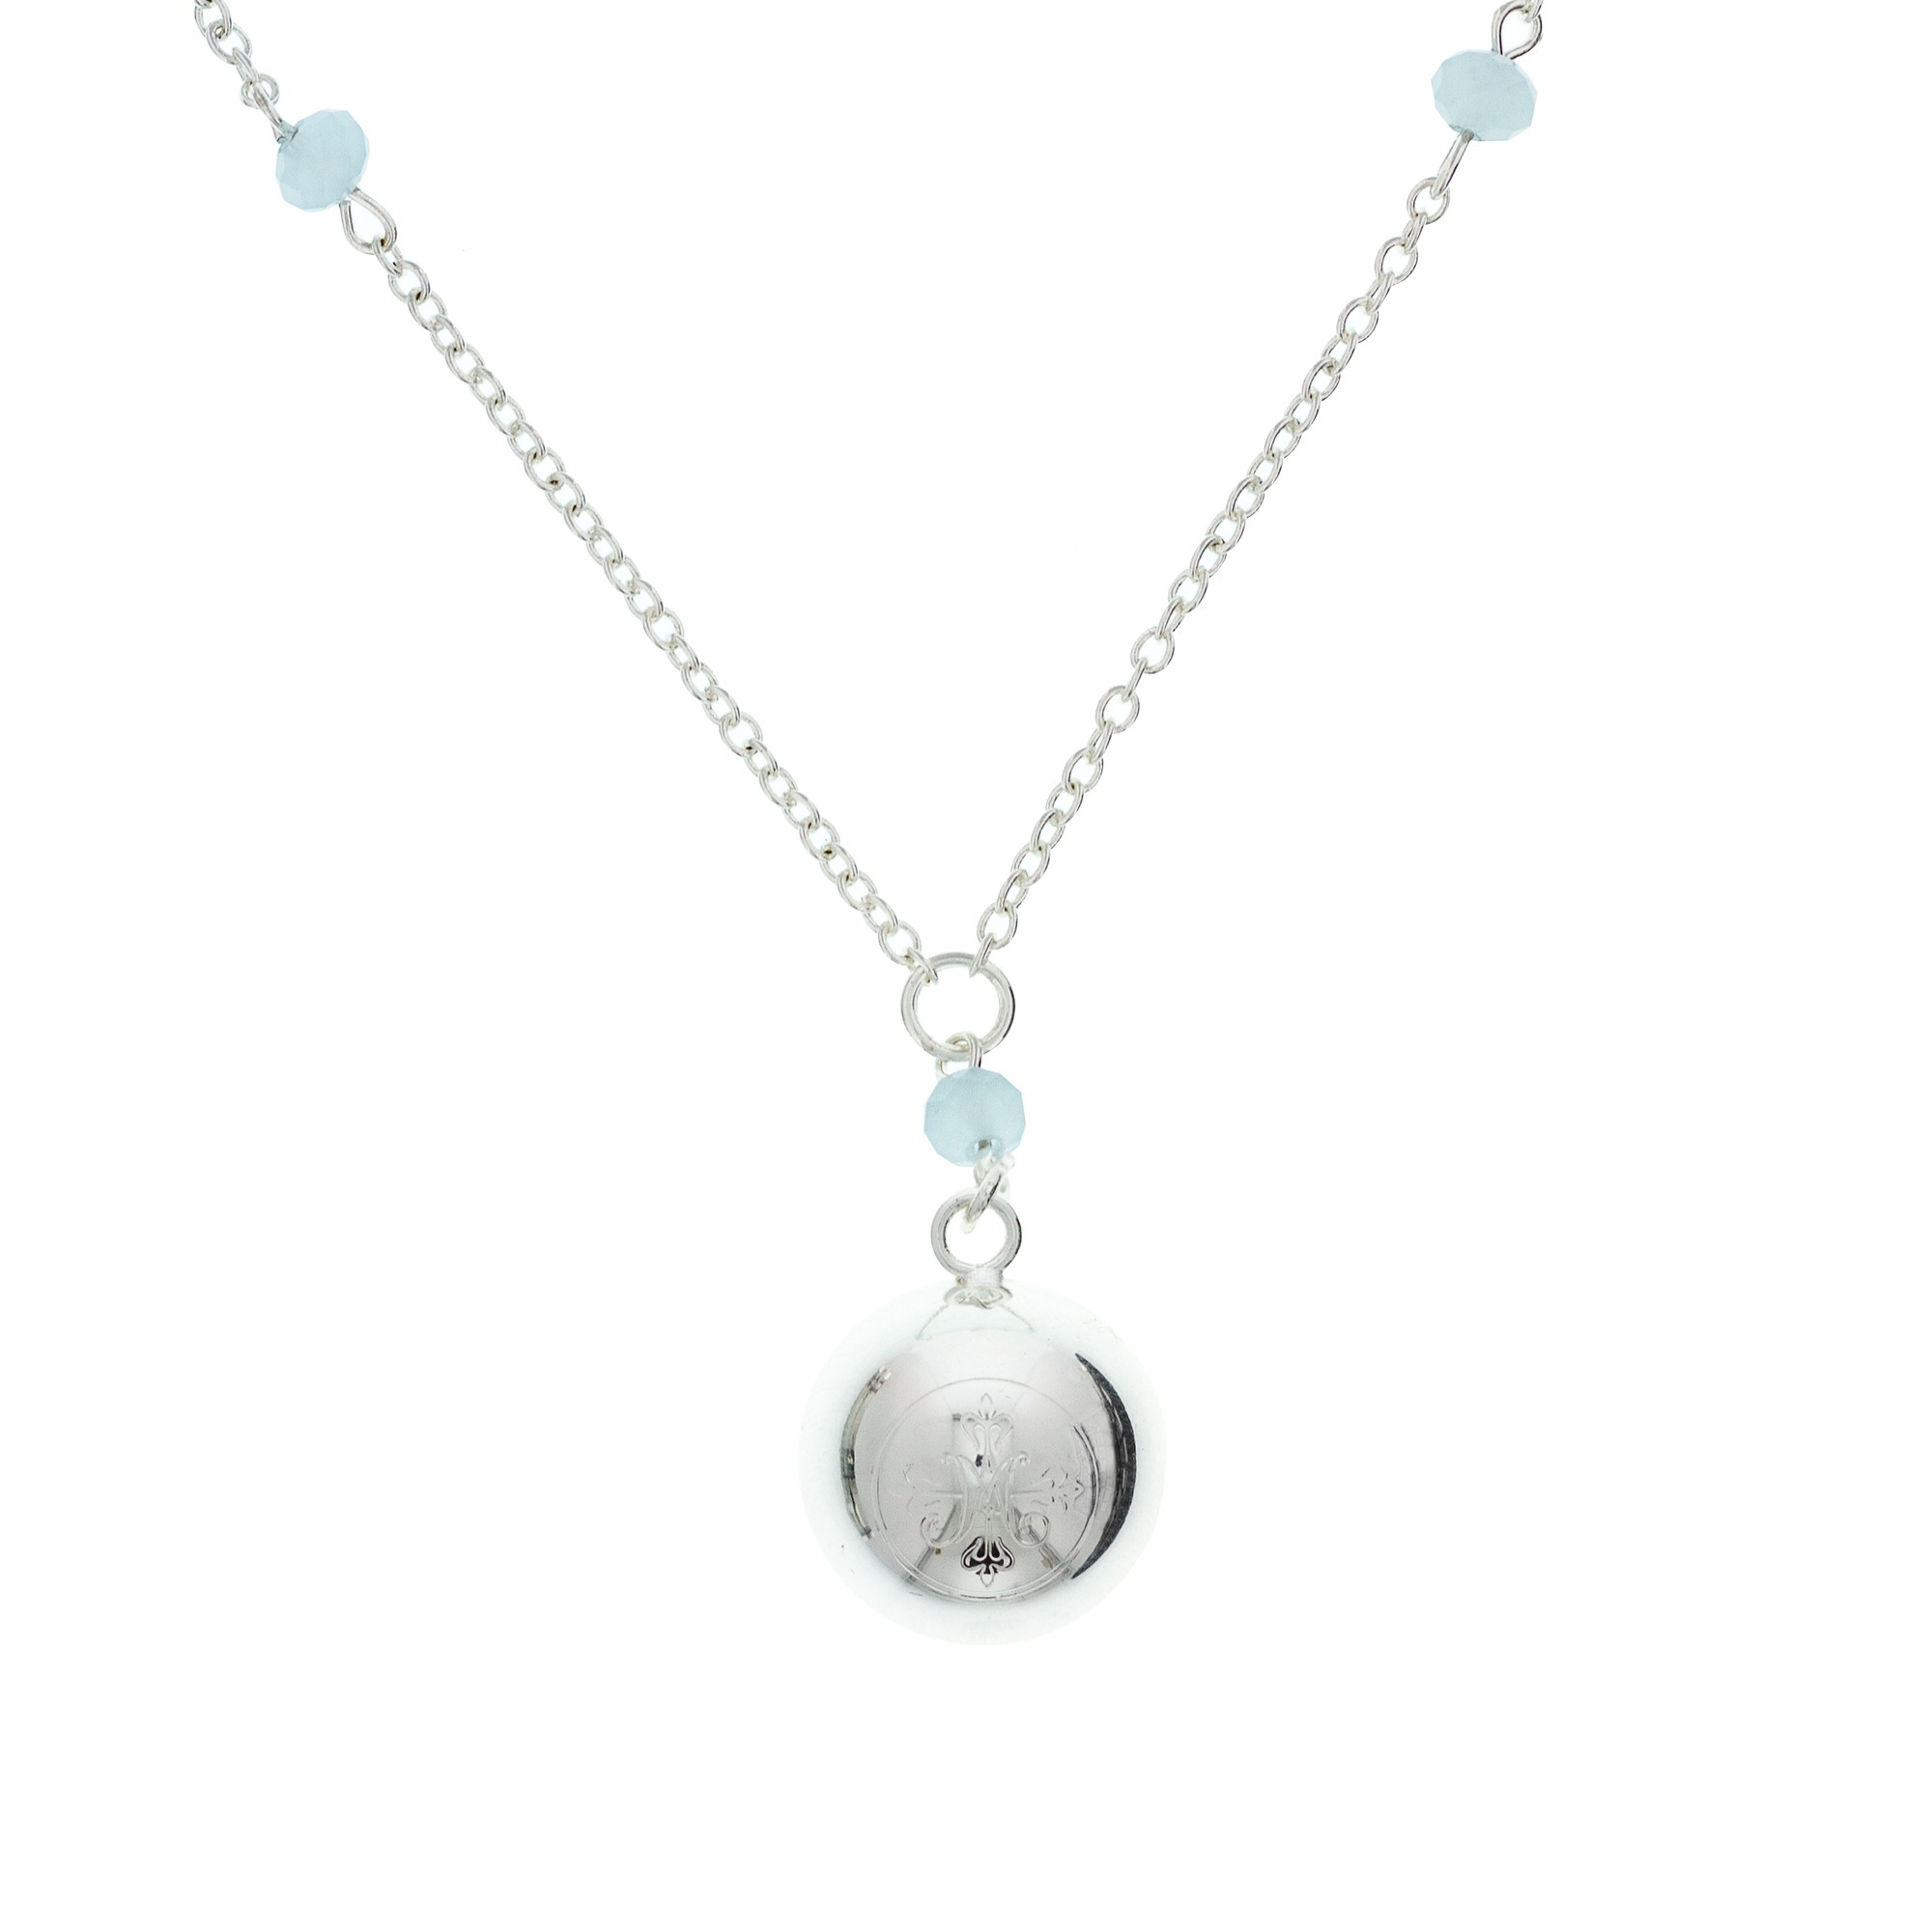 Choirs of Angels Chime Necklace - Silver